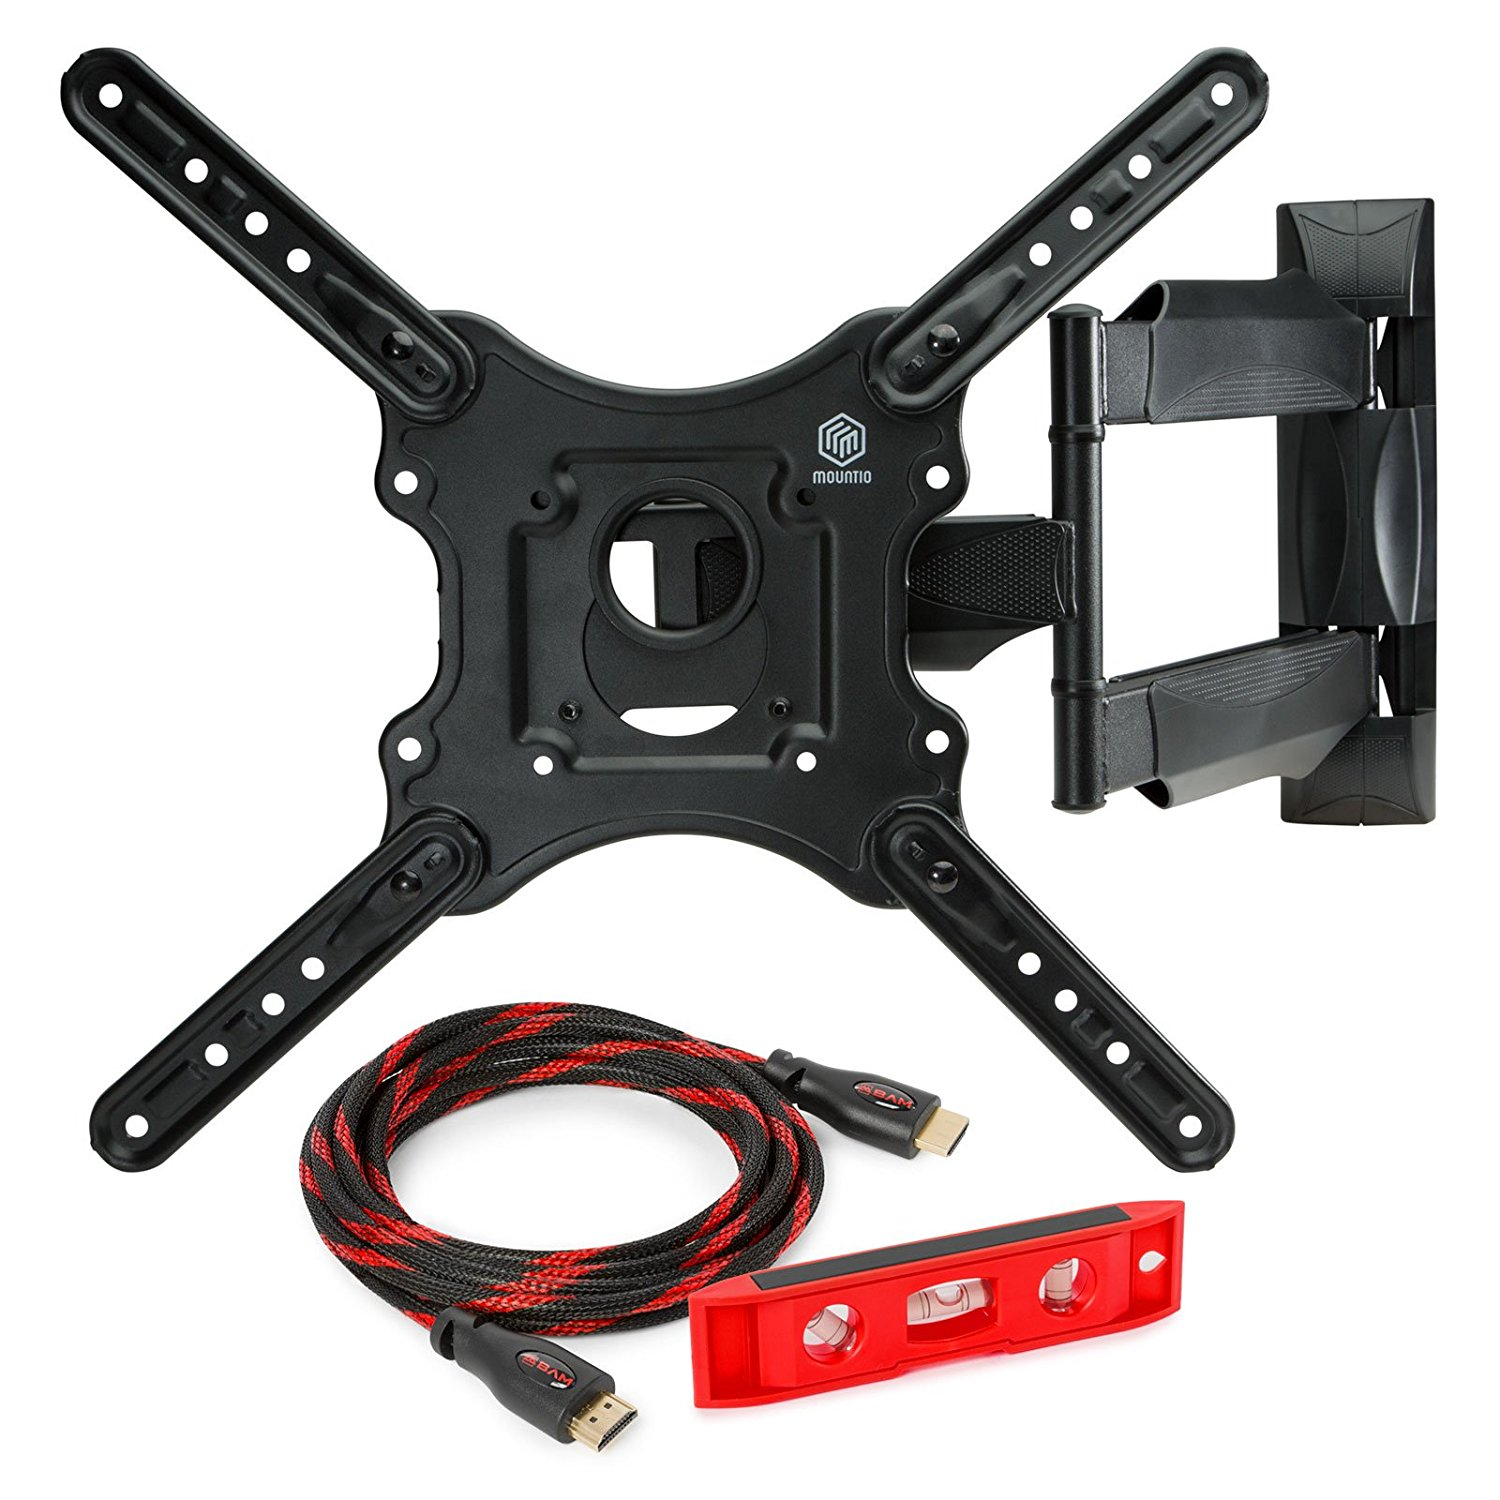 "Mountio MX1 Full Motion Articulating TV Wall Mount Bracket for 32""-52"" LED LCD Plasma Flat Screen Monitor up to 70 lbs and VESA 400x400mm"